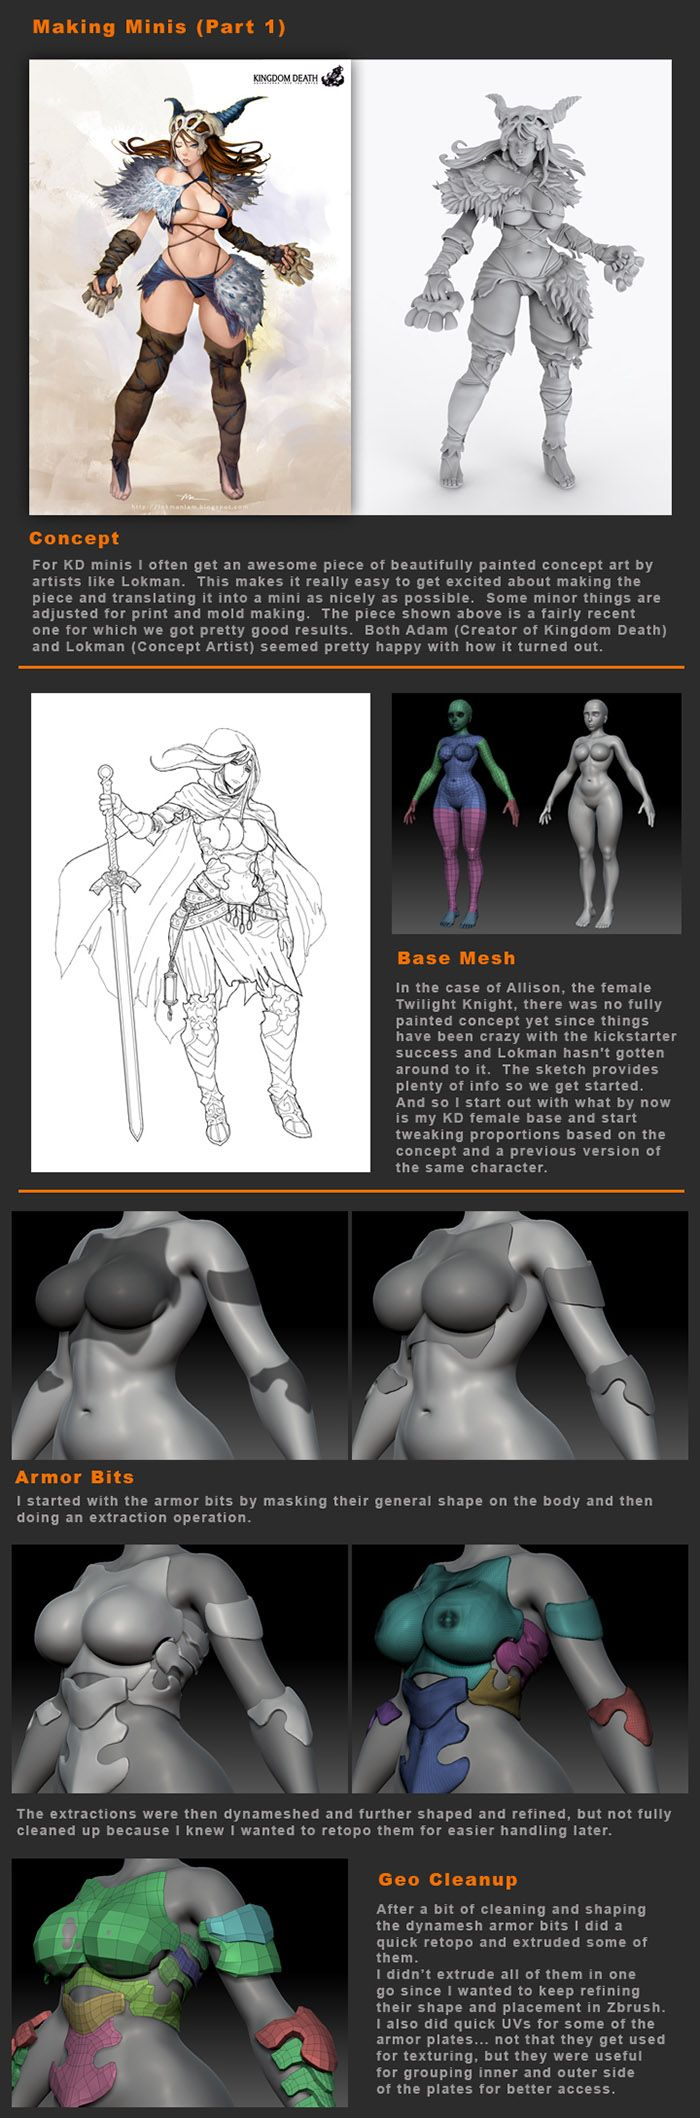 http://www.zbrushcentral.com/showthread.php?176344-Hec-s-2012-early-2013-works-dump/page2                                                                                                                                                                                 もっと見る